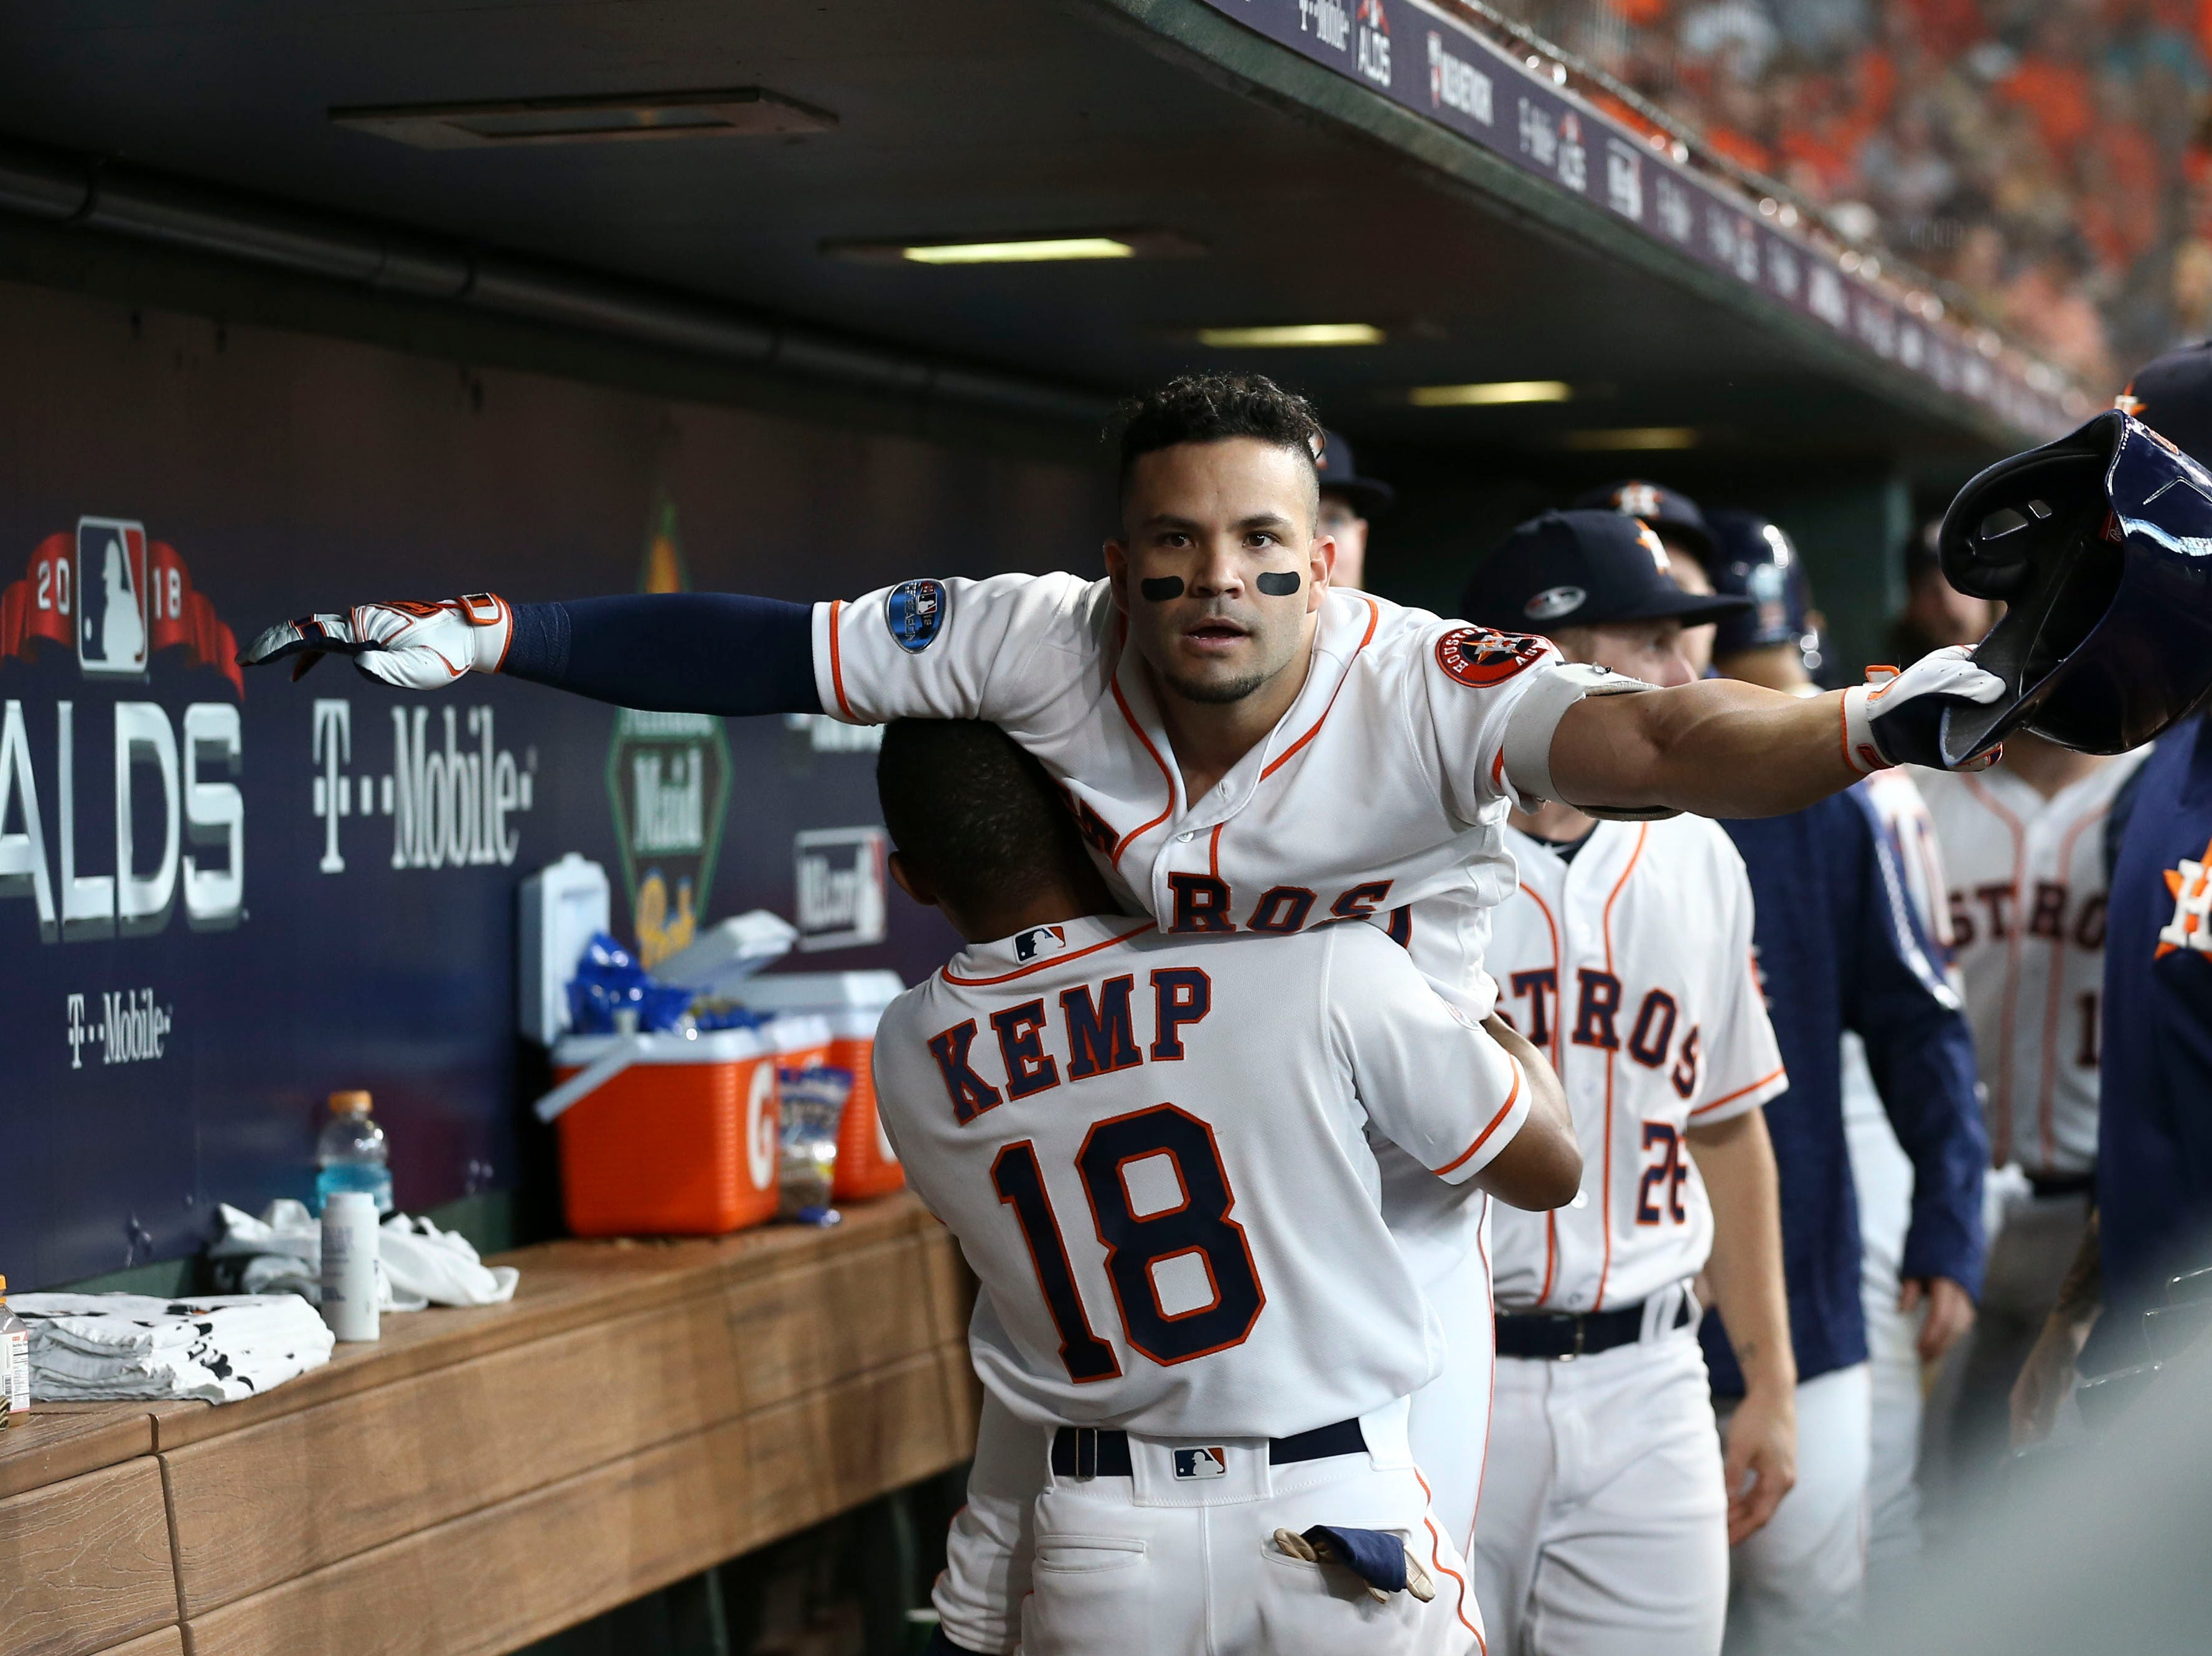 ALDS Game 1:  Astros second baseman Jose Altuve is congratulated by Tony Kemp after hitting a solo home run in the fifth inning.